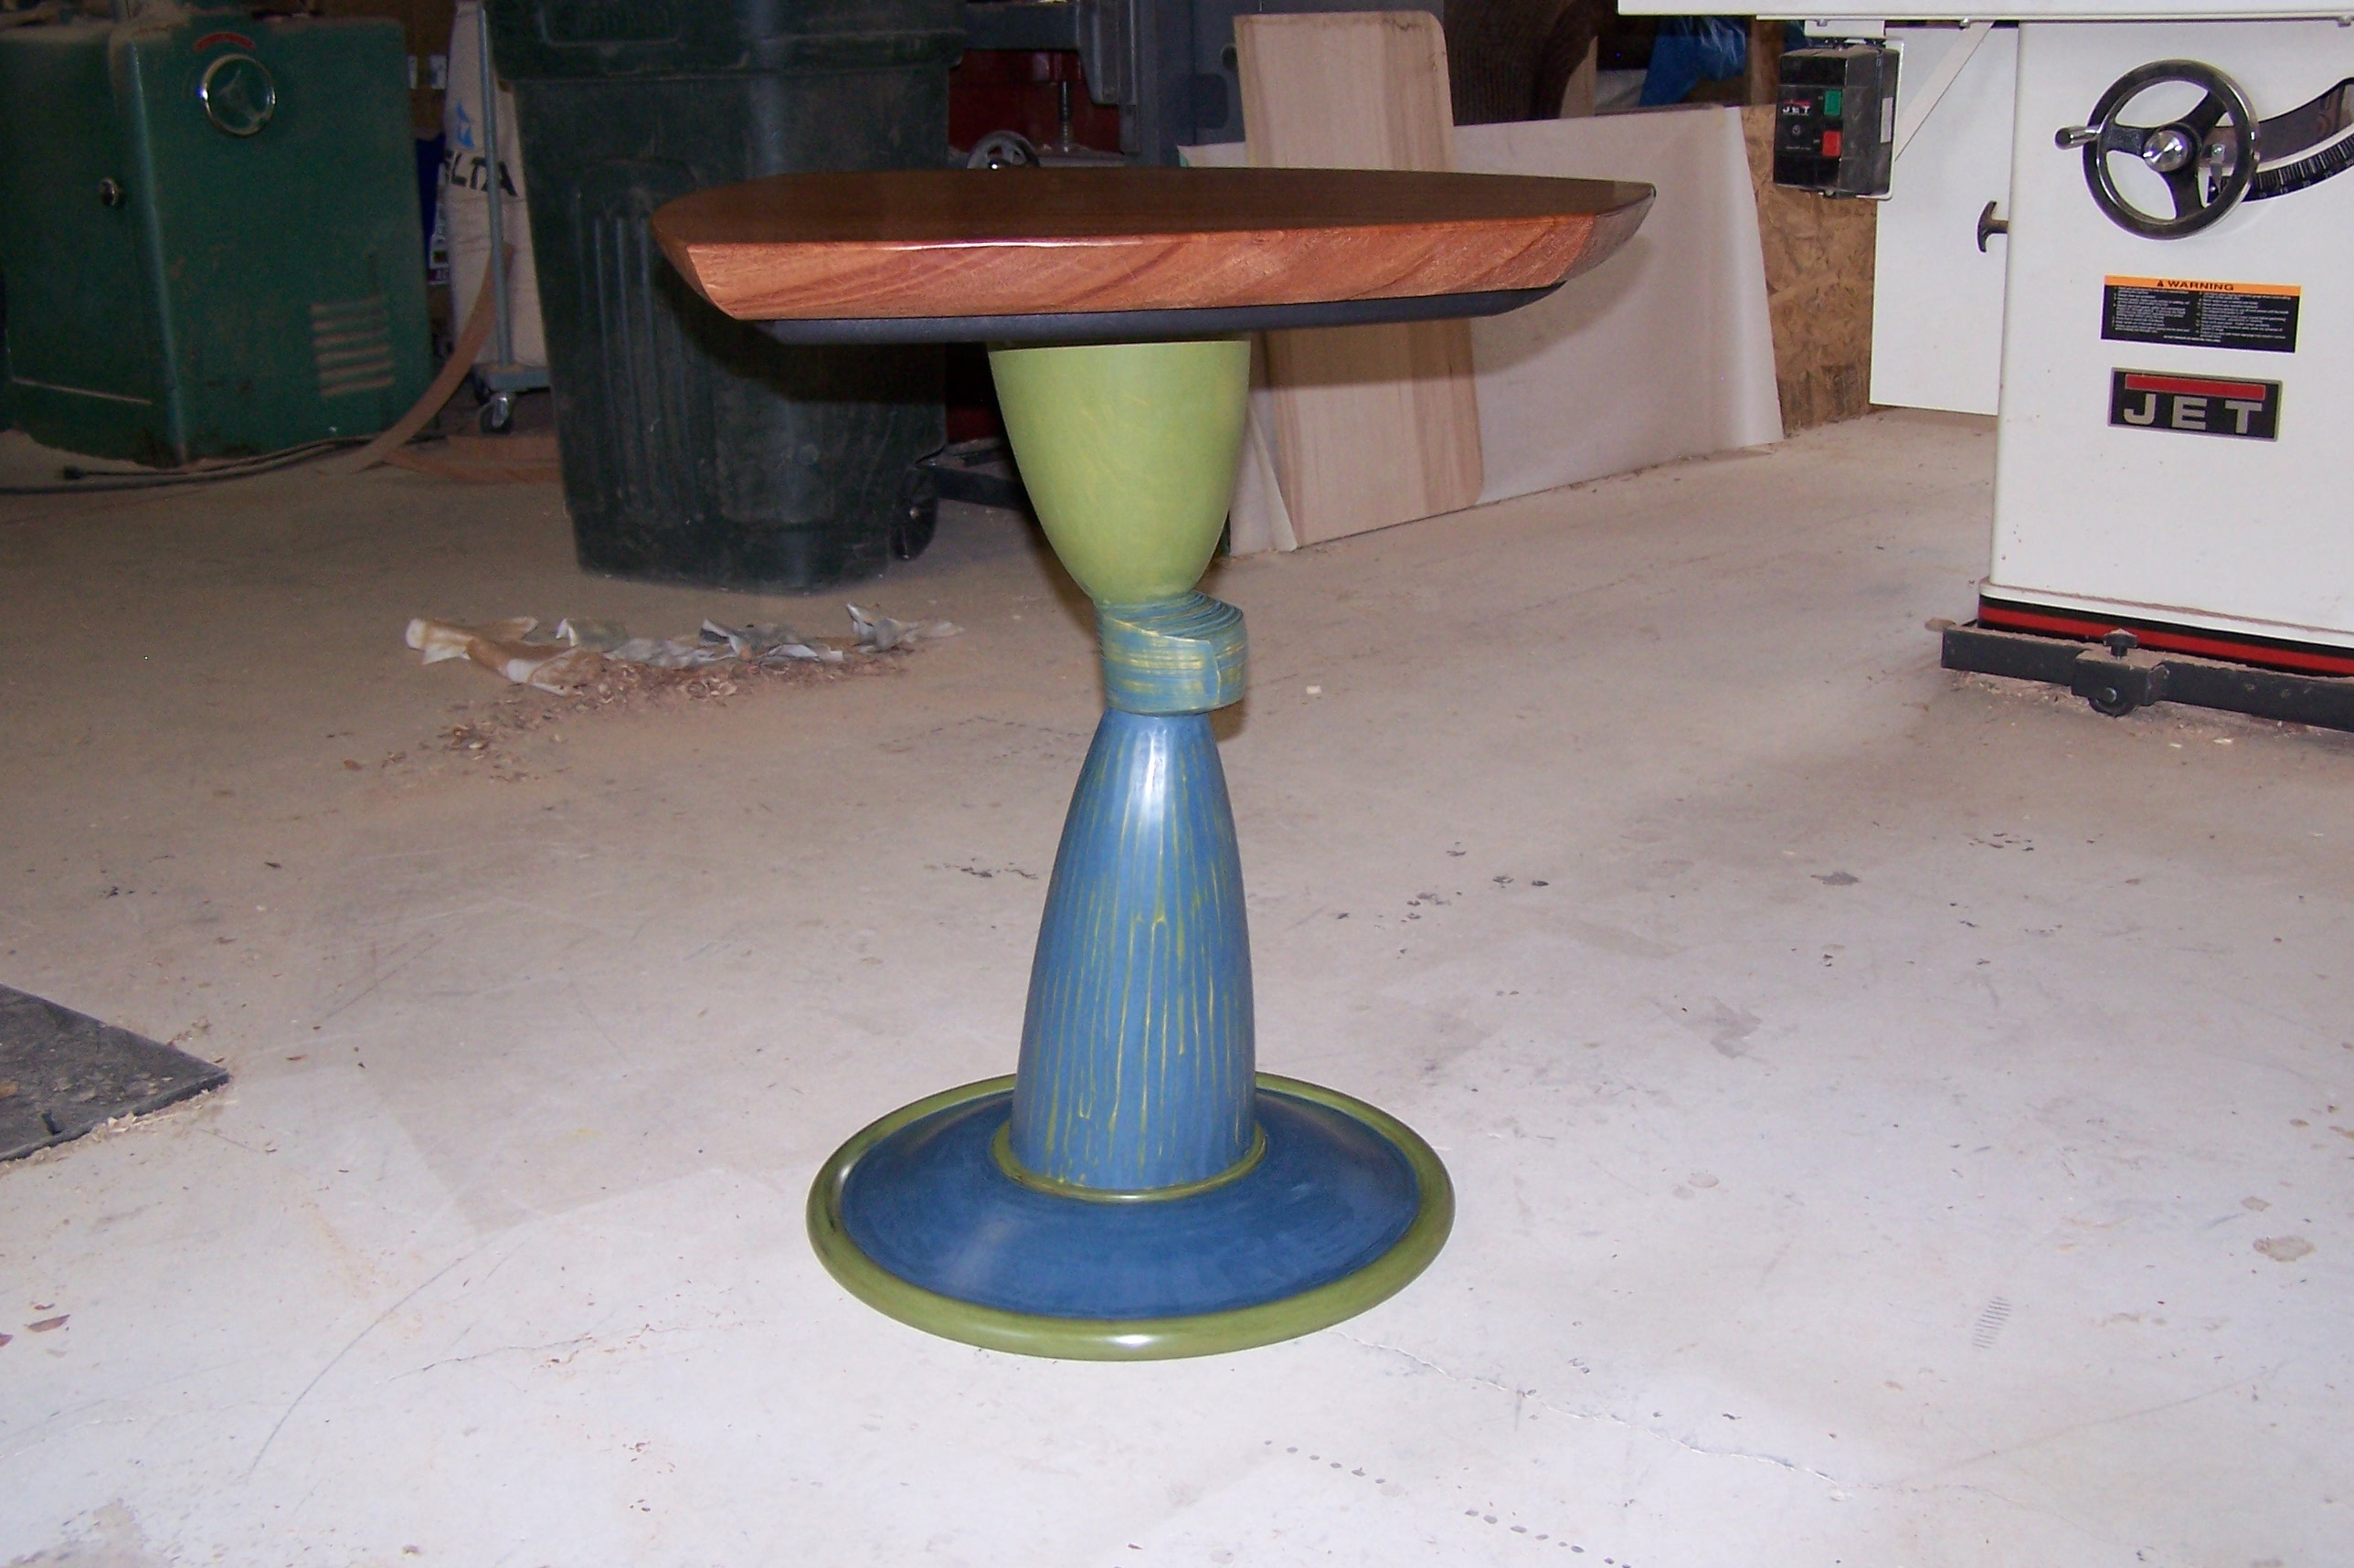 Off-Center Table, millk paint with African Mahogany top